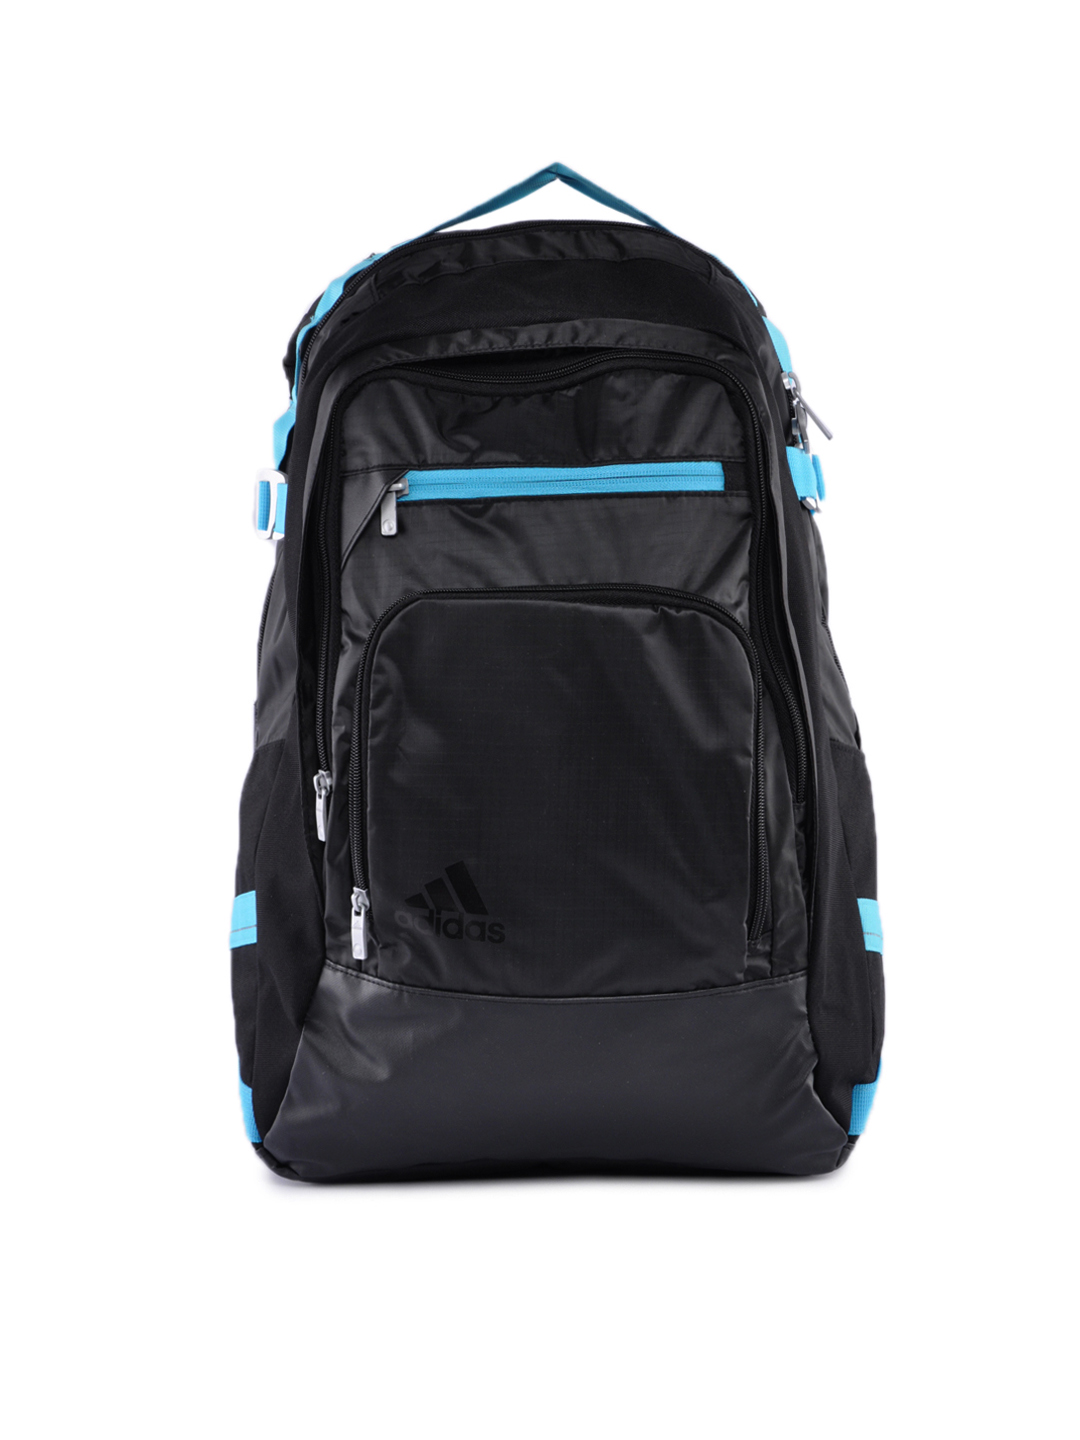 Adidas Unisex Black Casual Backpack